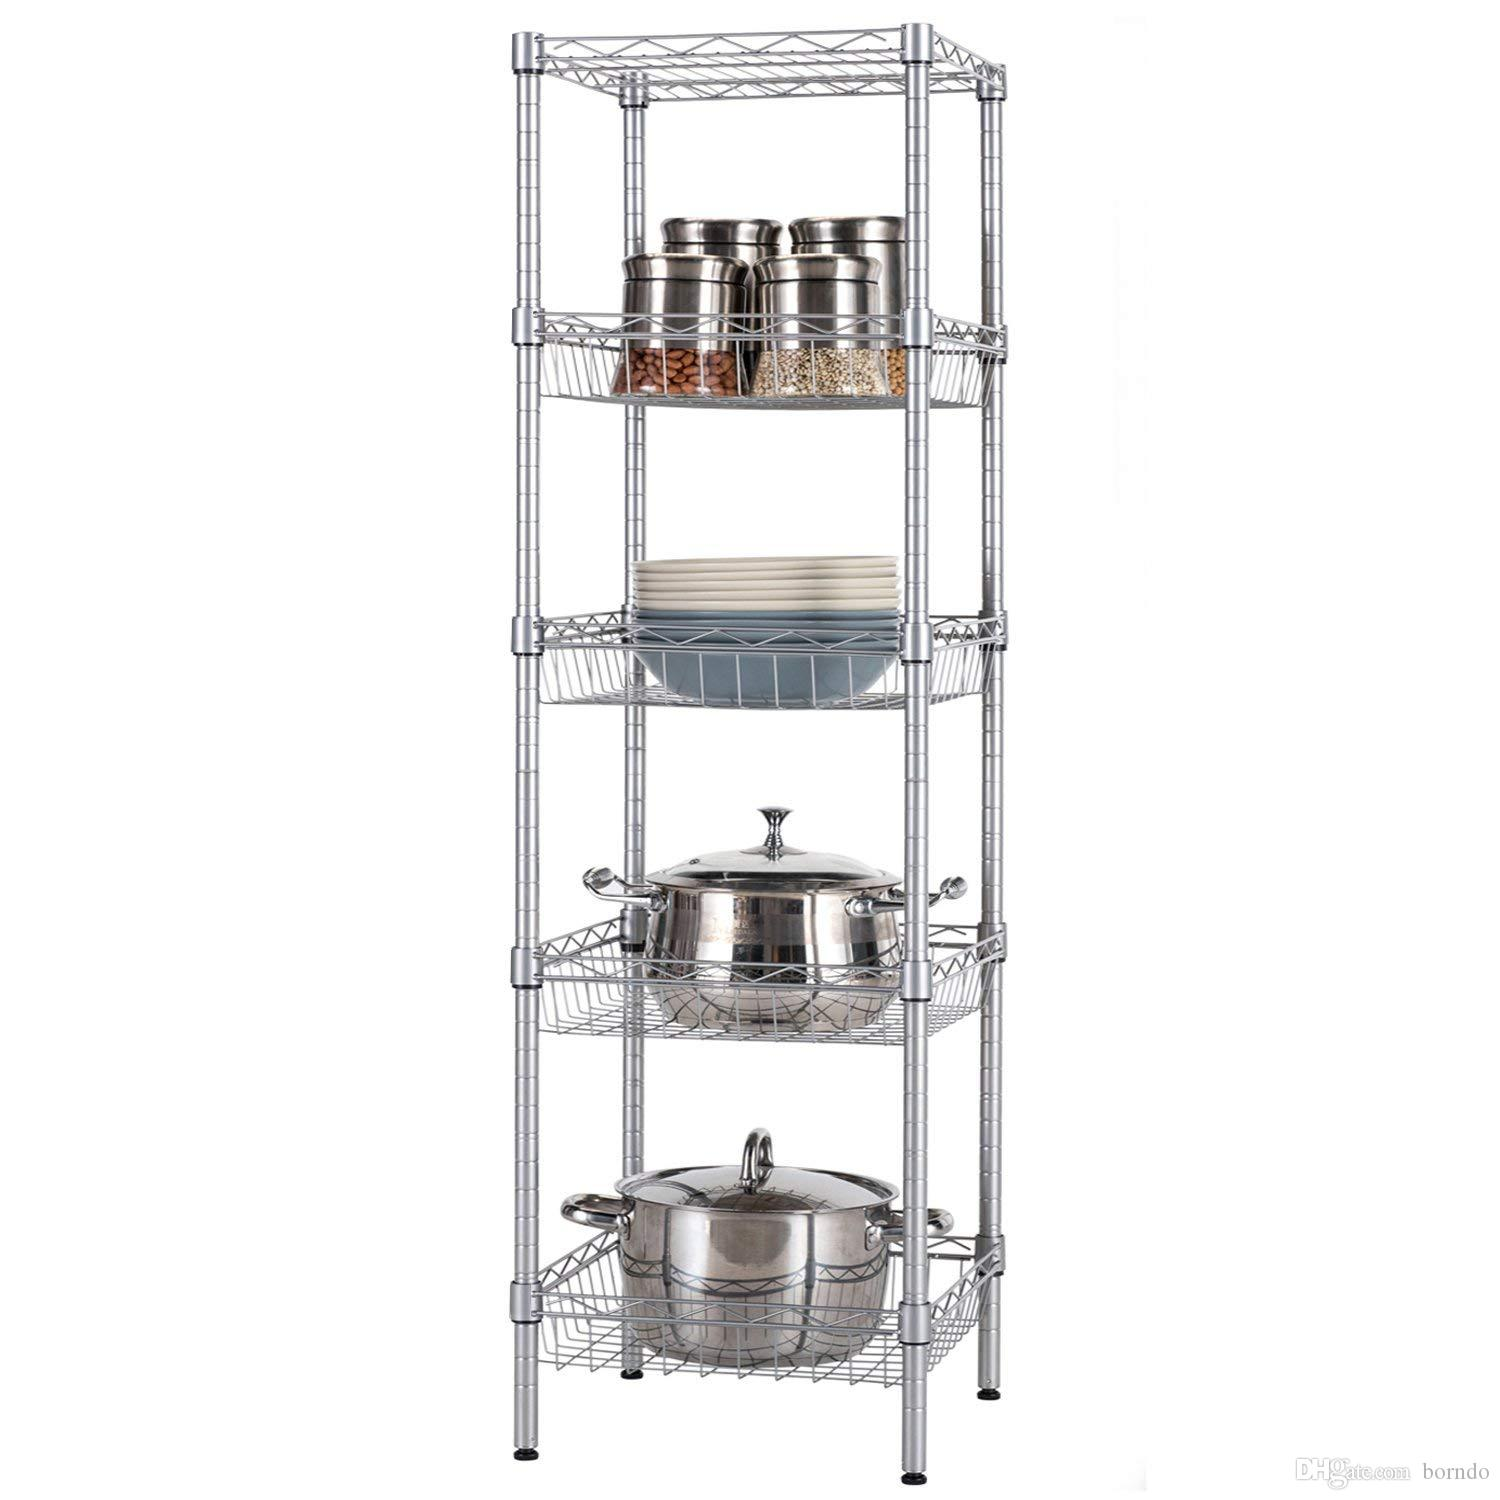 2019 Open Kitchen Metal Rack And Shelves Units, Pots And Pans Wine Dishes  Storage Organizer ,Baker\'S Rack, Silver Gray Steel 5 Tiers From Borndo, ...